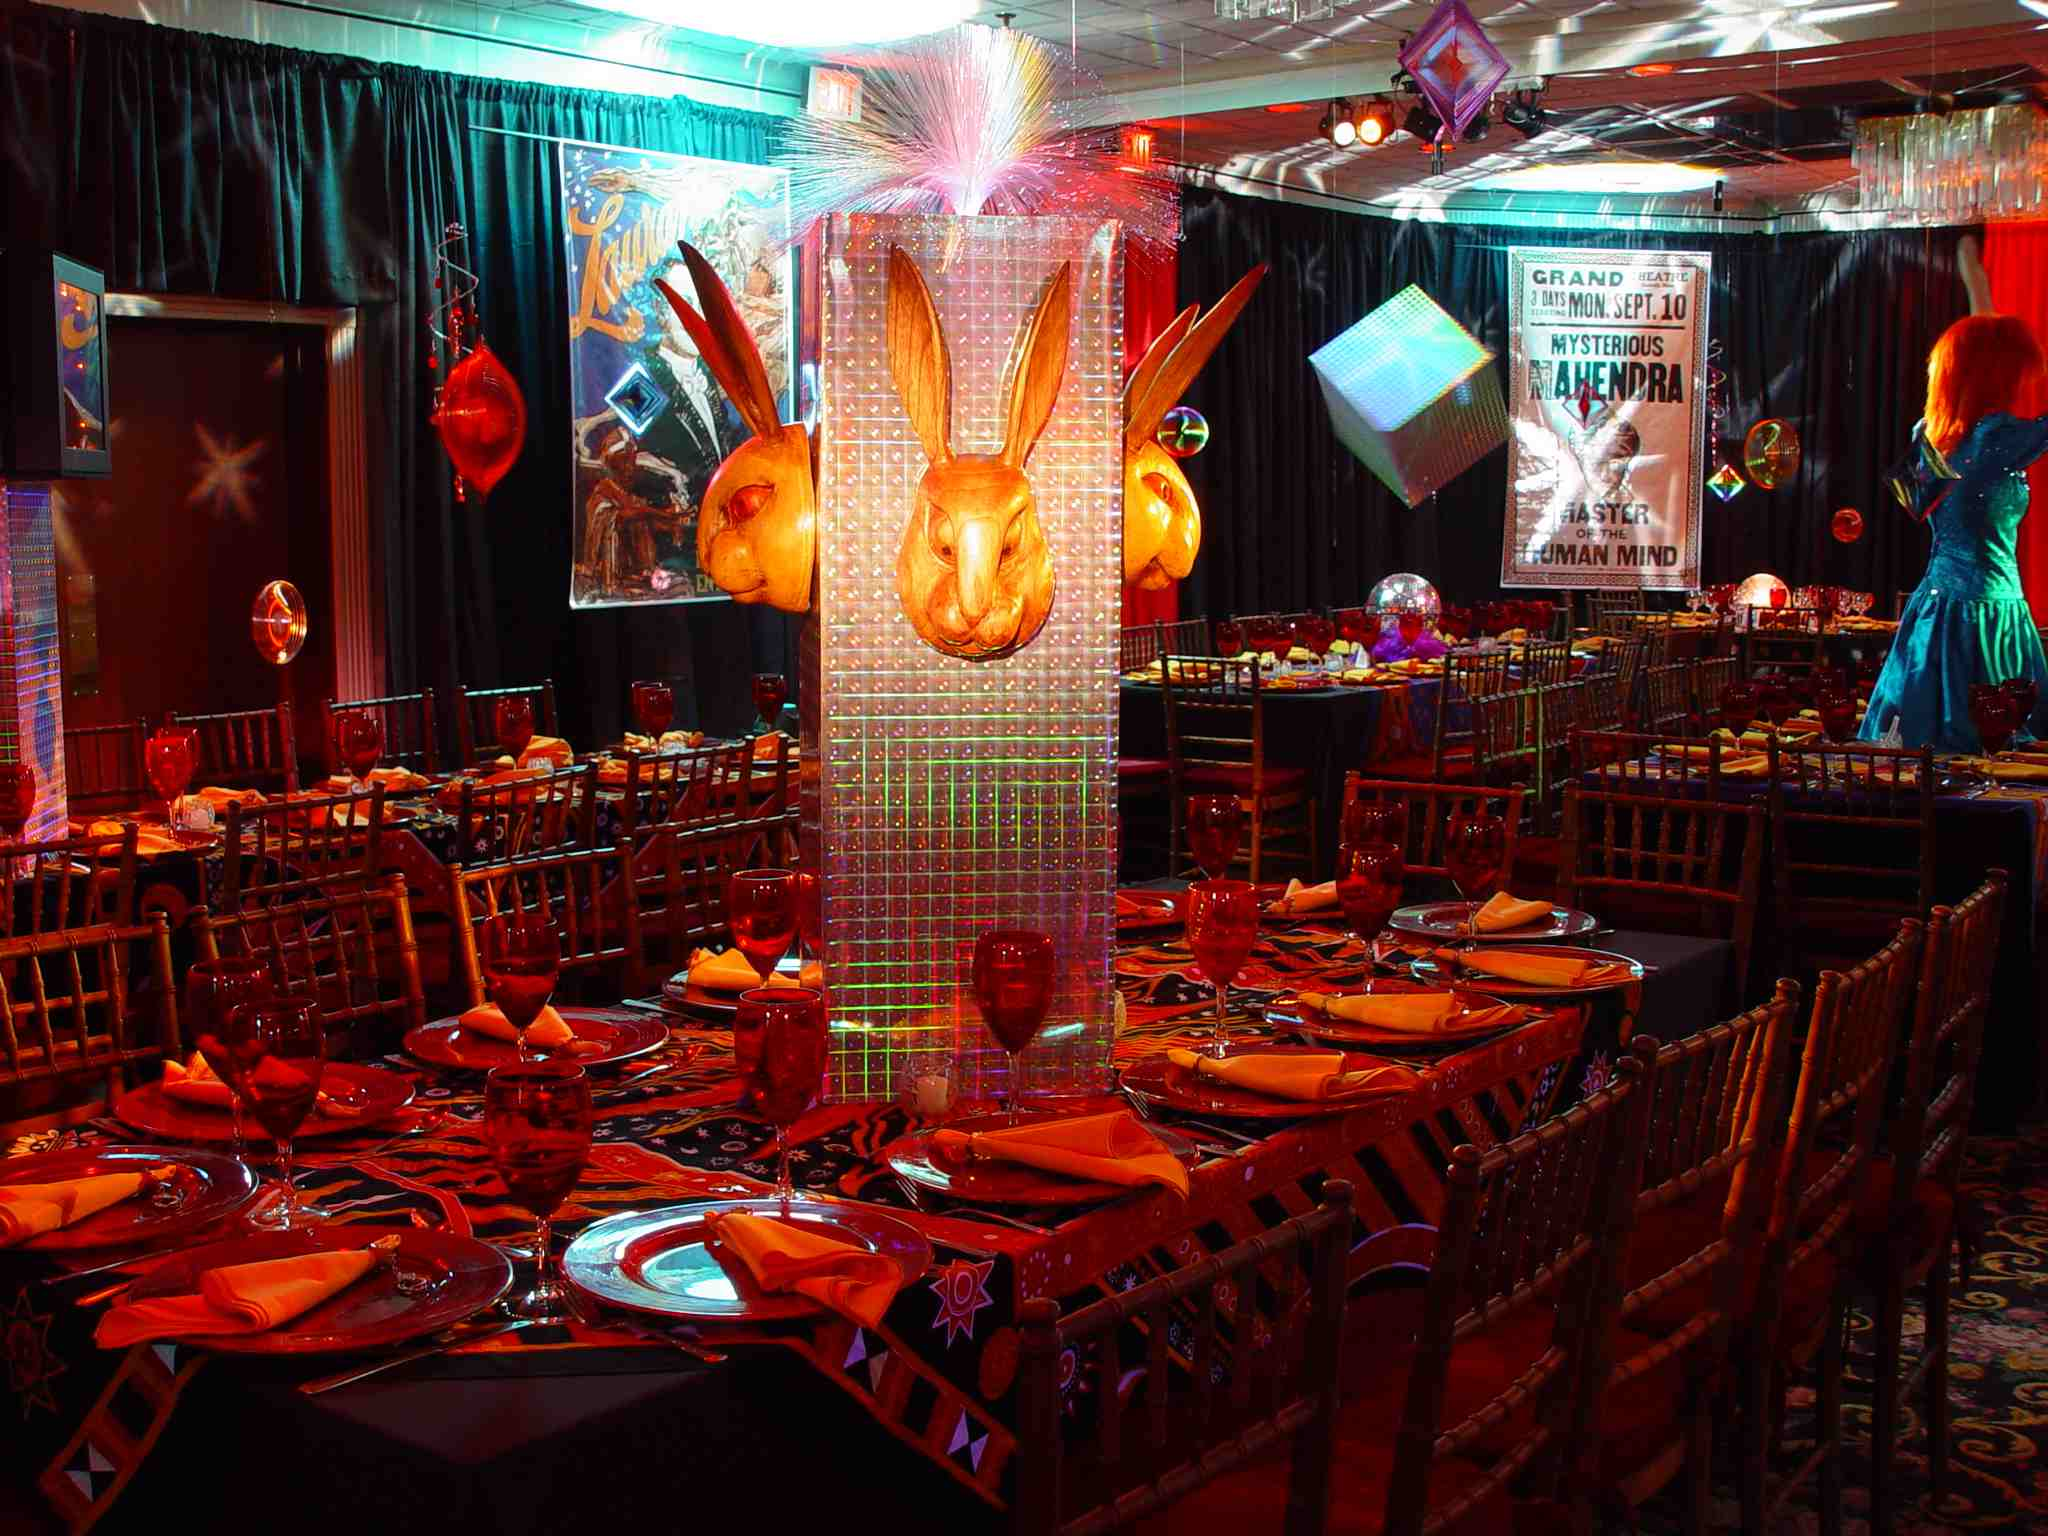 Rabbit+&+Magic+Mitzvah+decor+nj+ny+pa+eggsotic+events.jpg